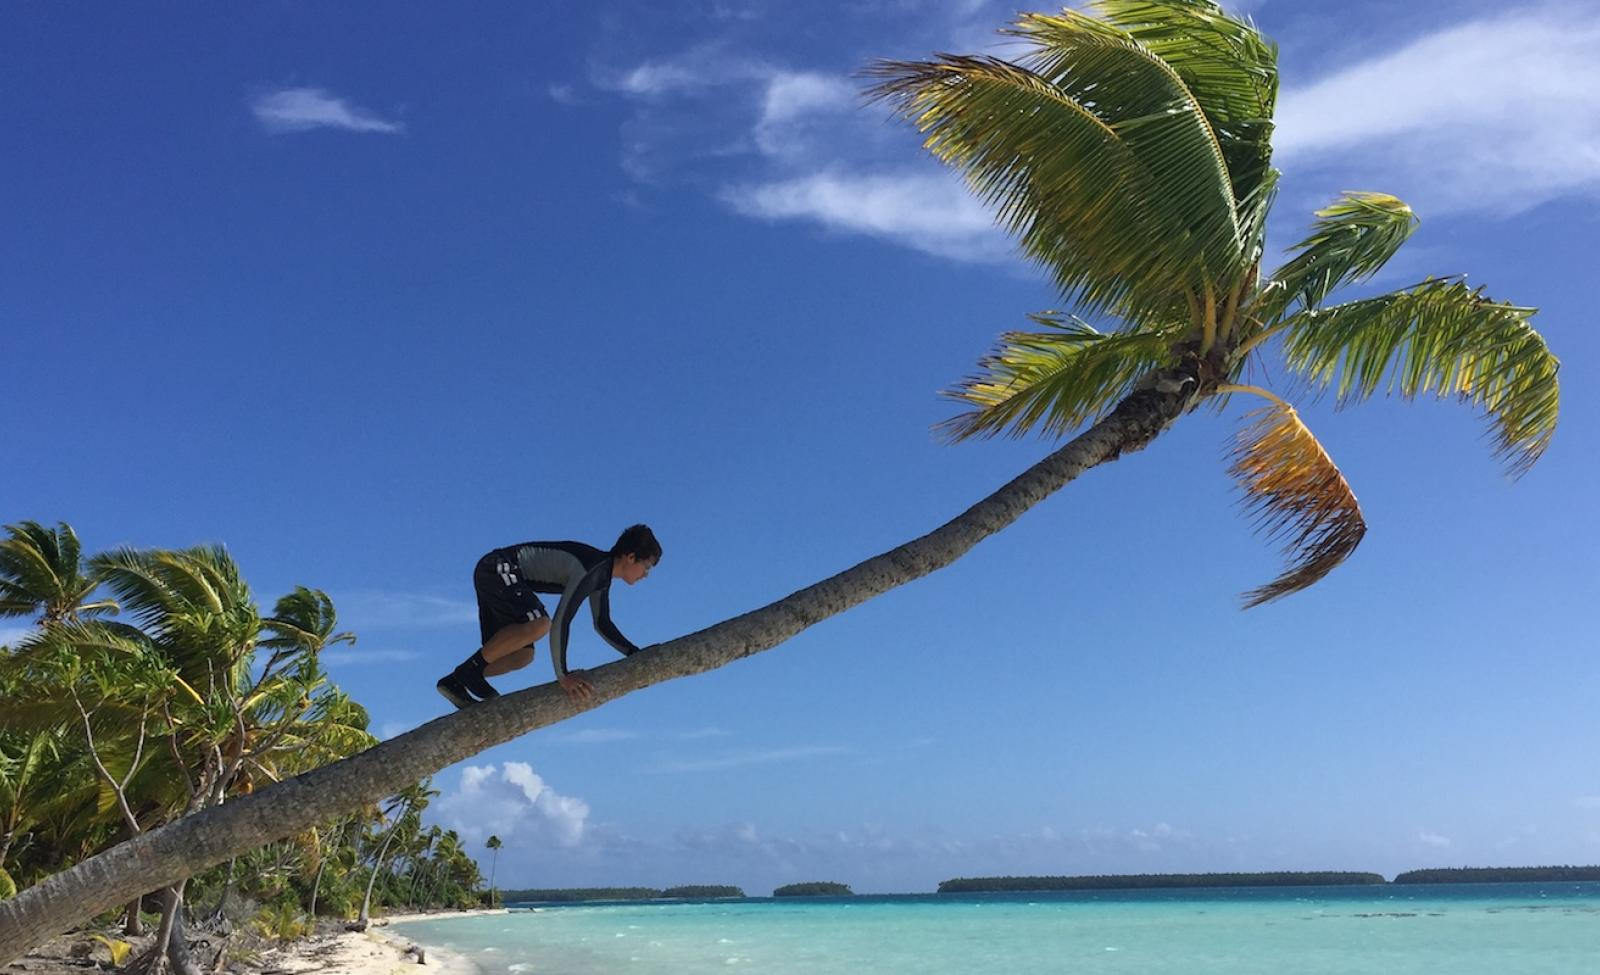 climbing a coconut tree